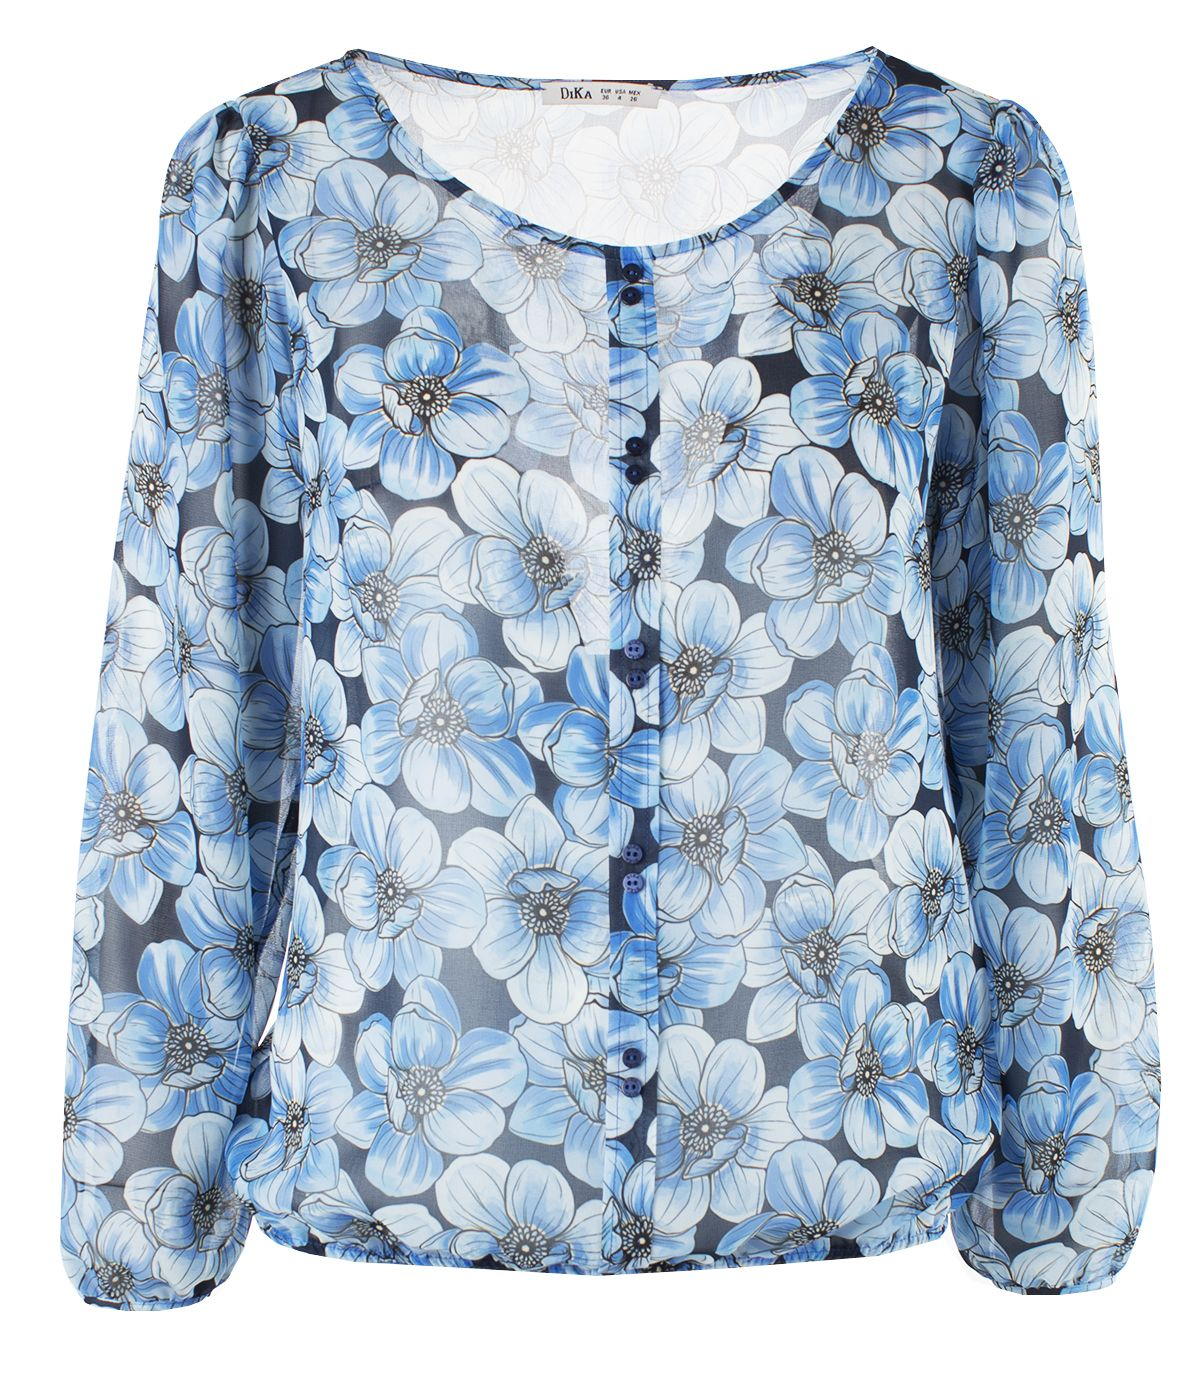 Box pleat blouse with buttons and large flowers print 0